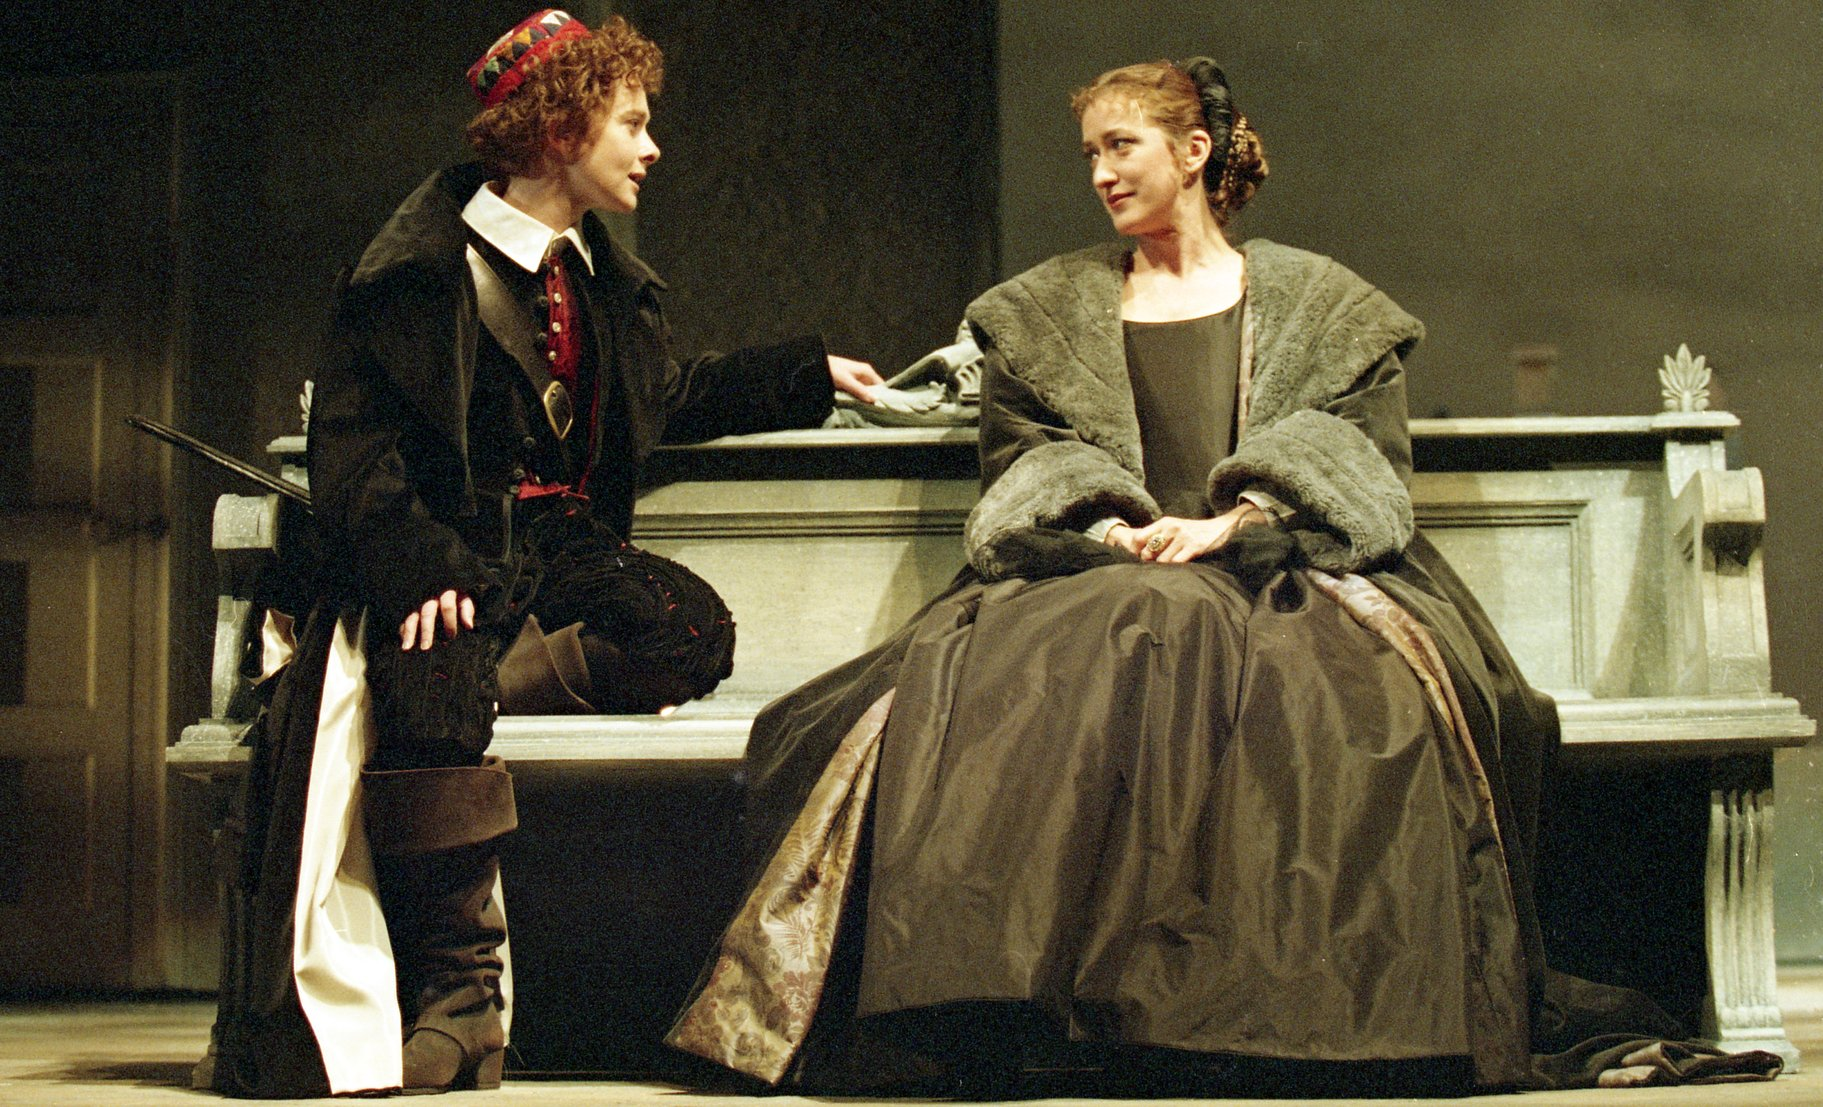 Olivia sits at a bench with 'Cesario' in the 1994 production of Twelfth Night.